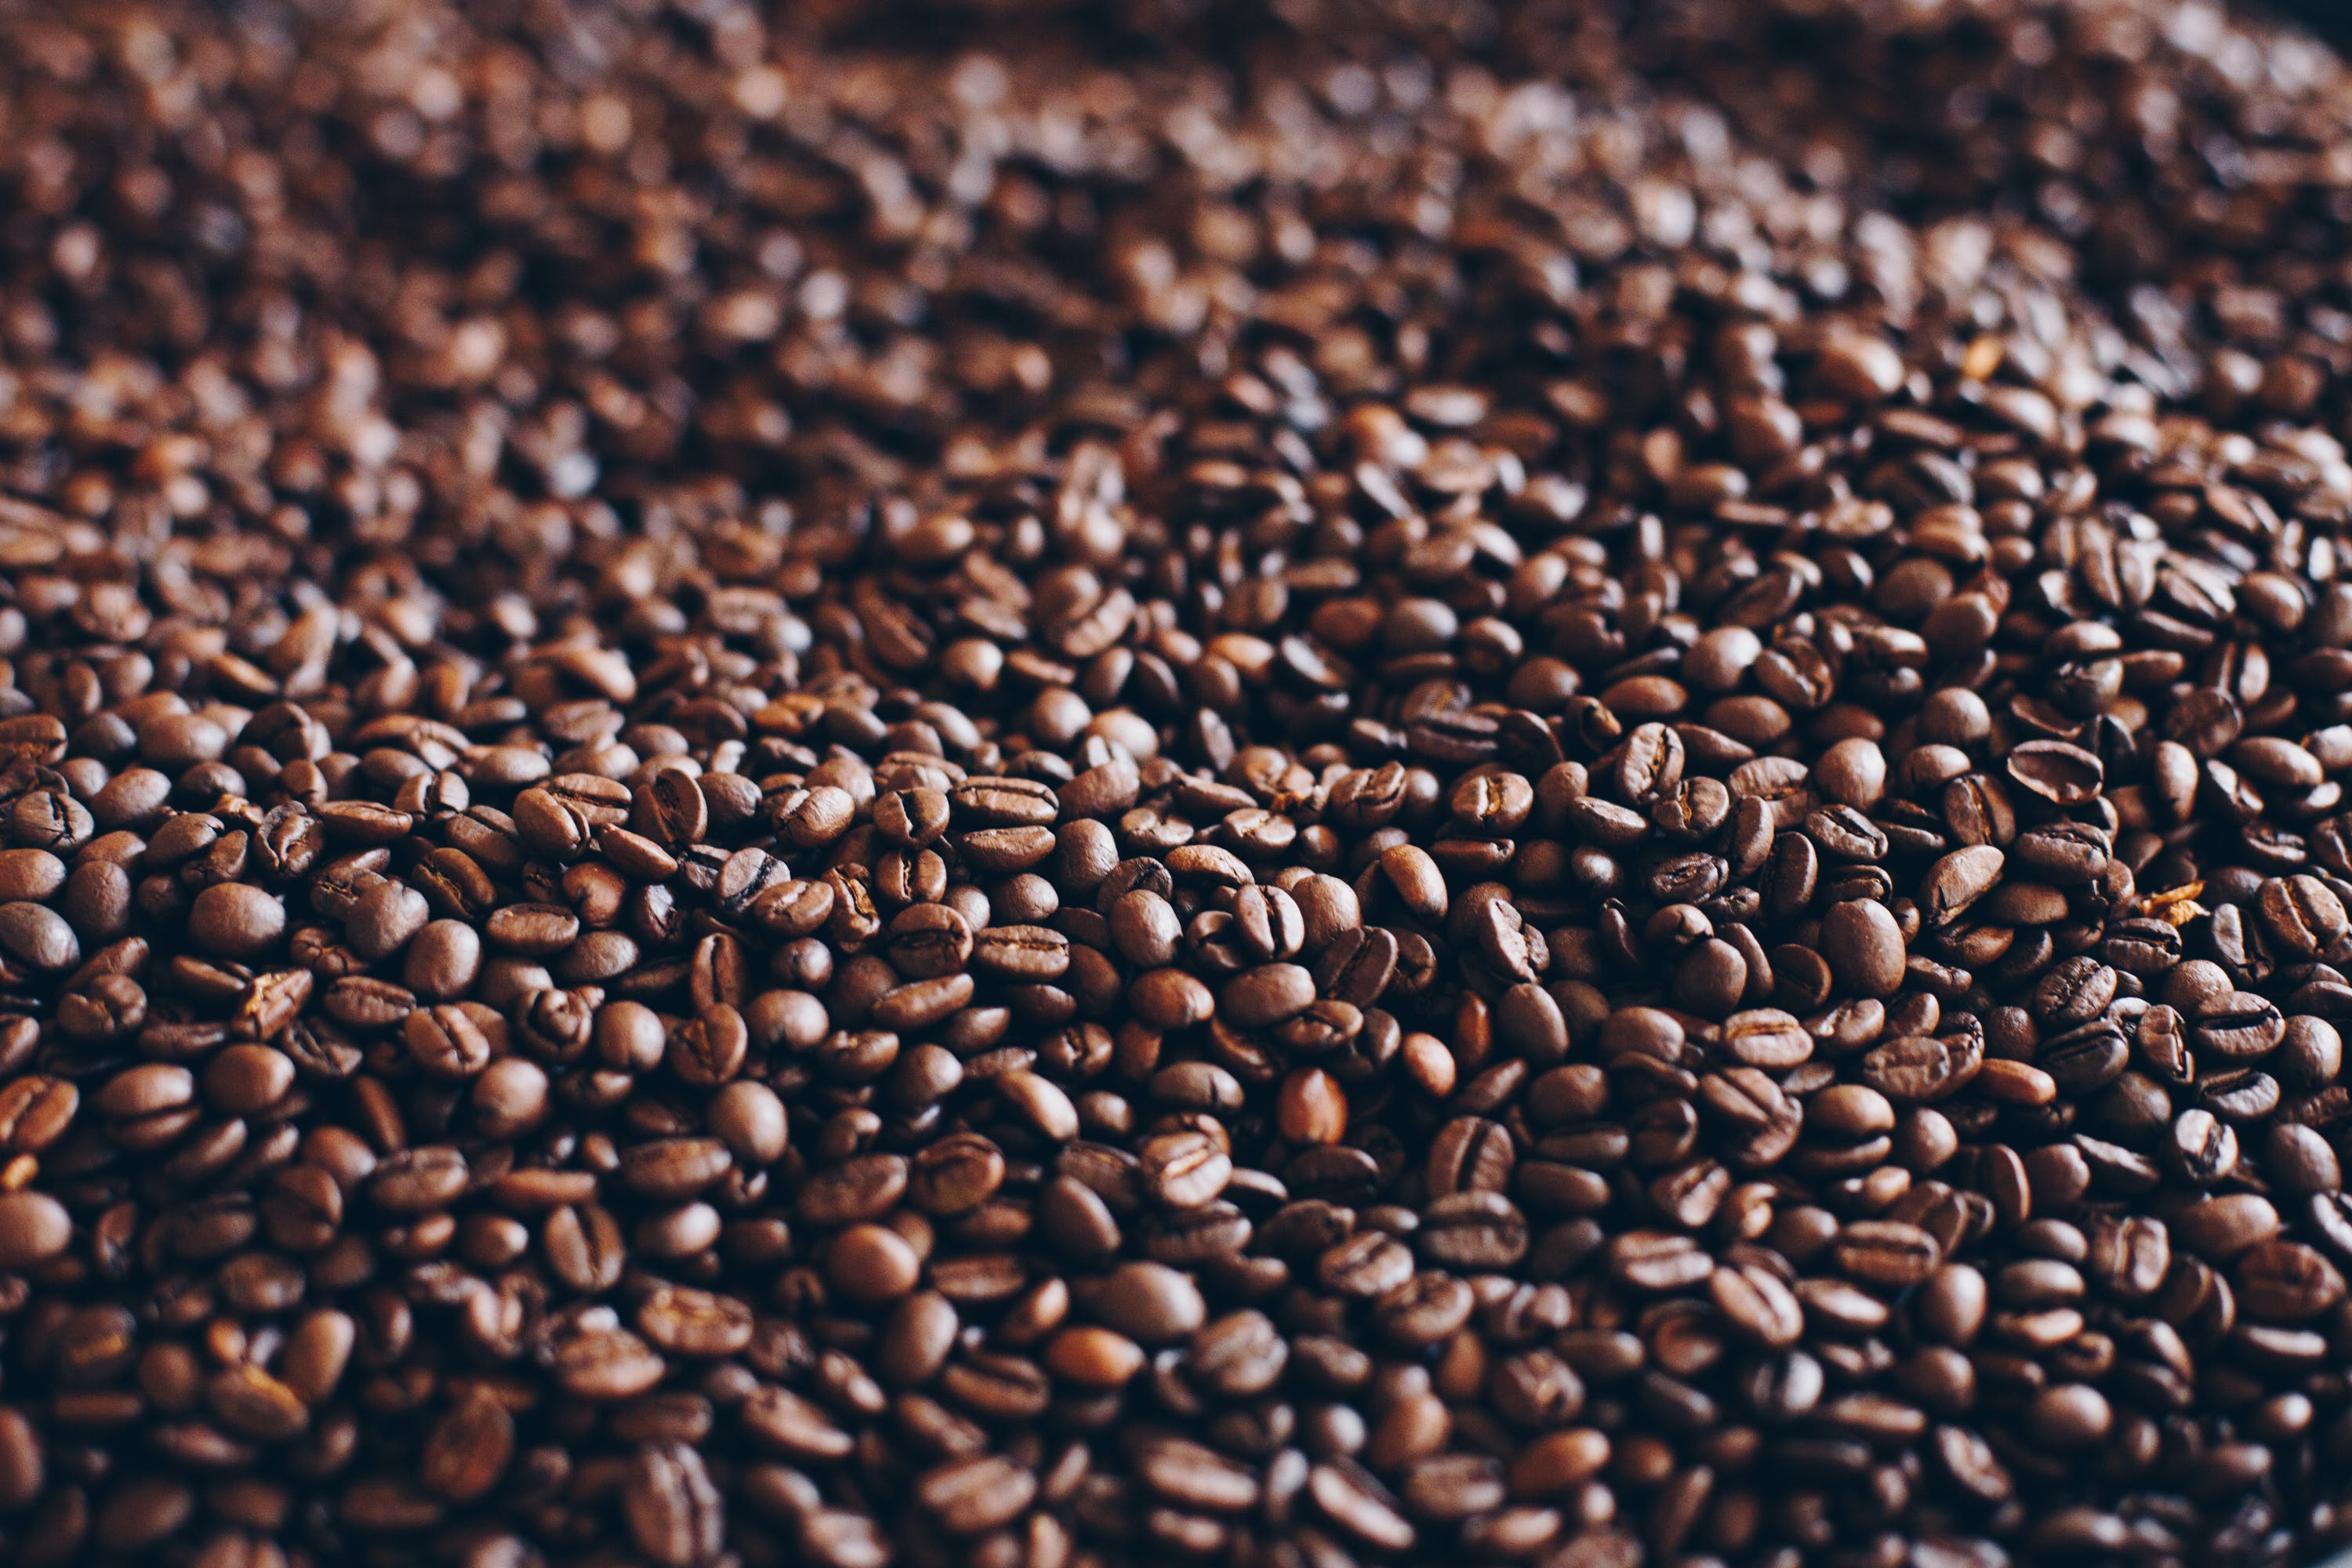 Close-Up Photography of Roasted Coffee Beans